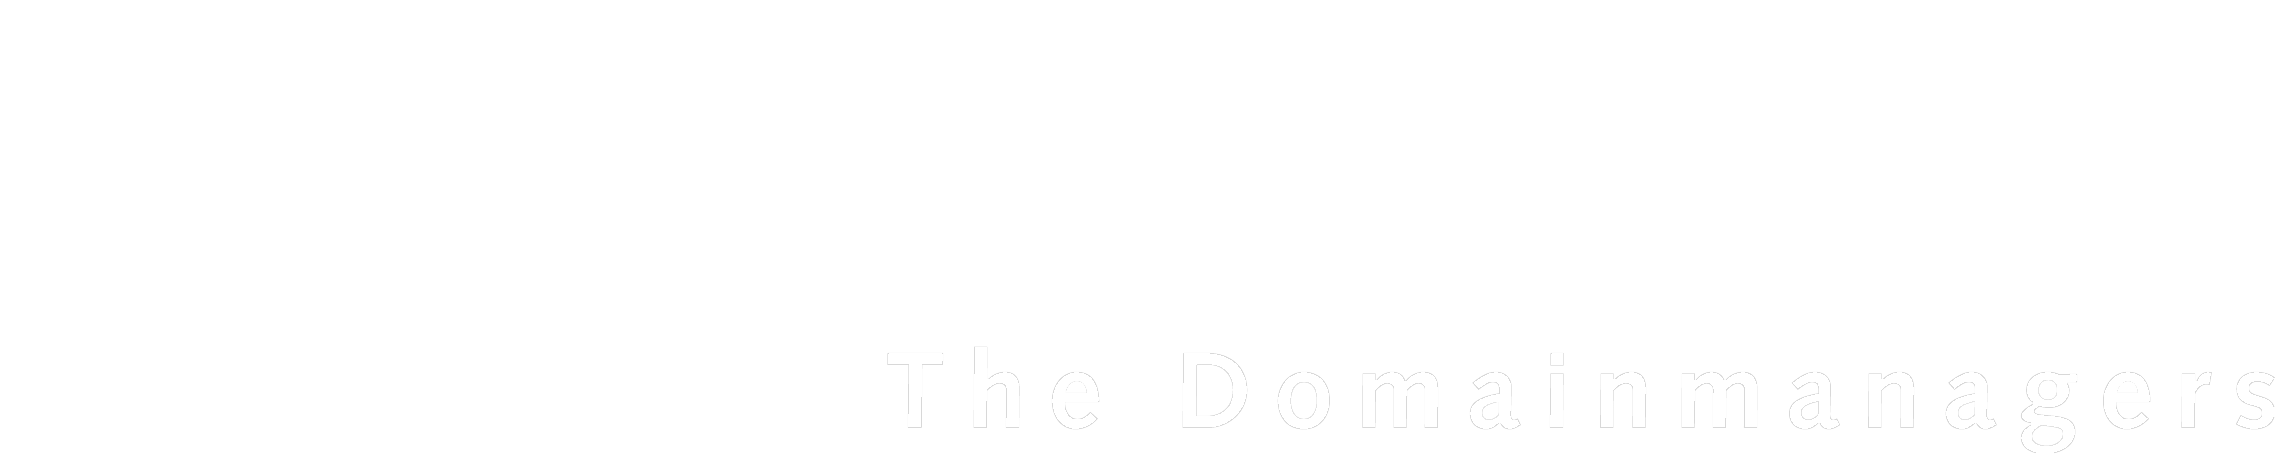 Logo 123domain.eu - The Domainmanagers